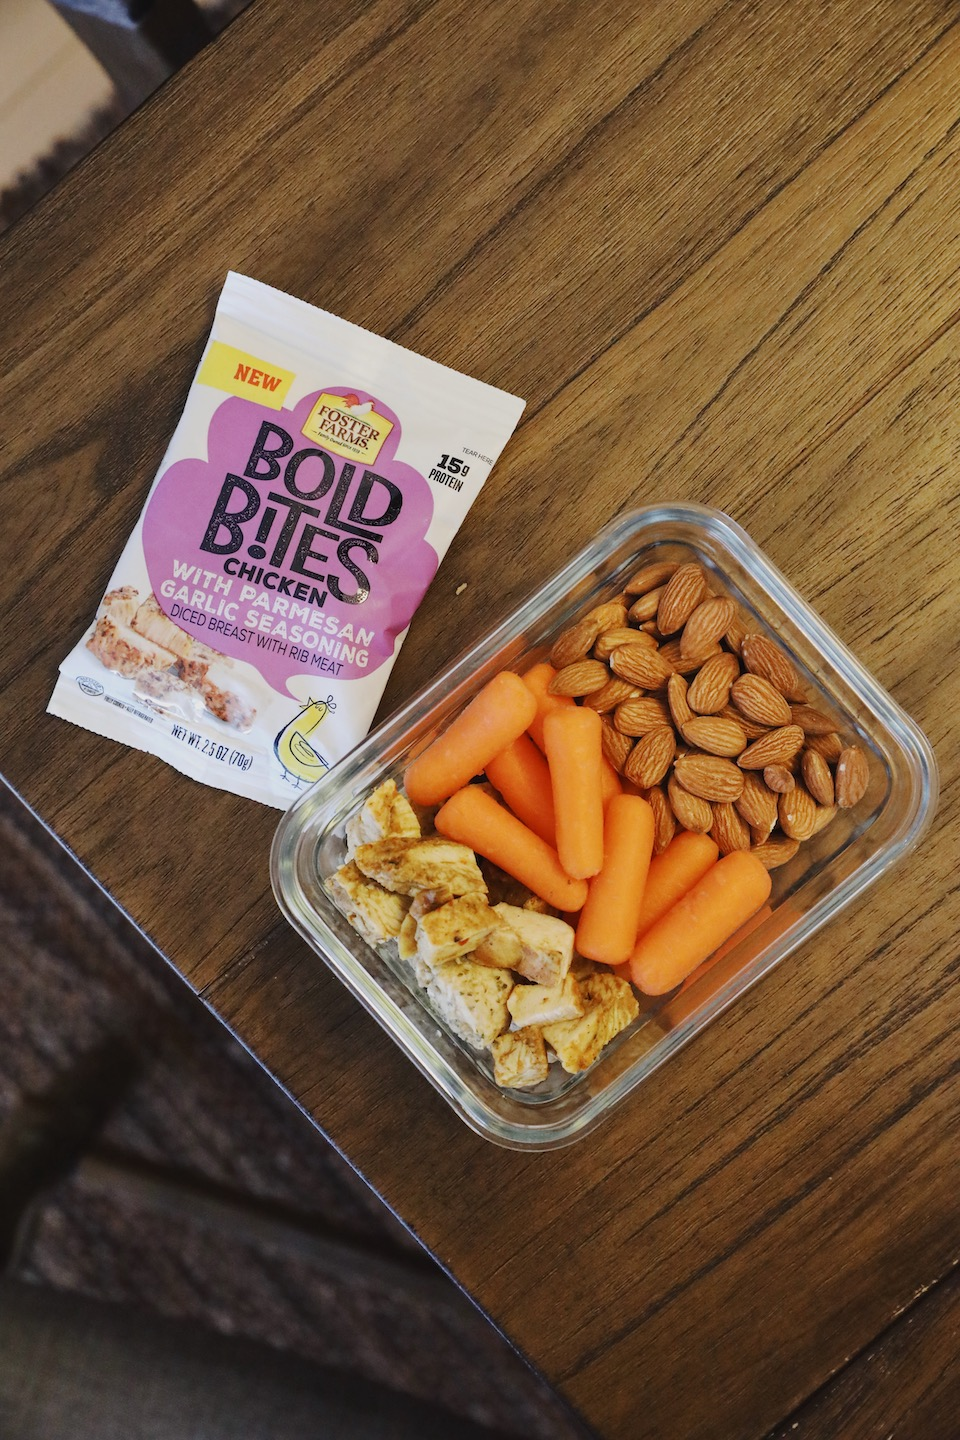 Meal prepping with Foster Farms Bold Bites